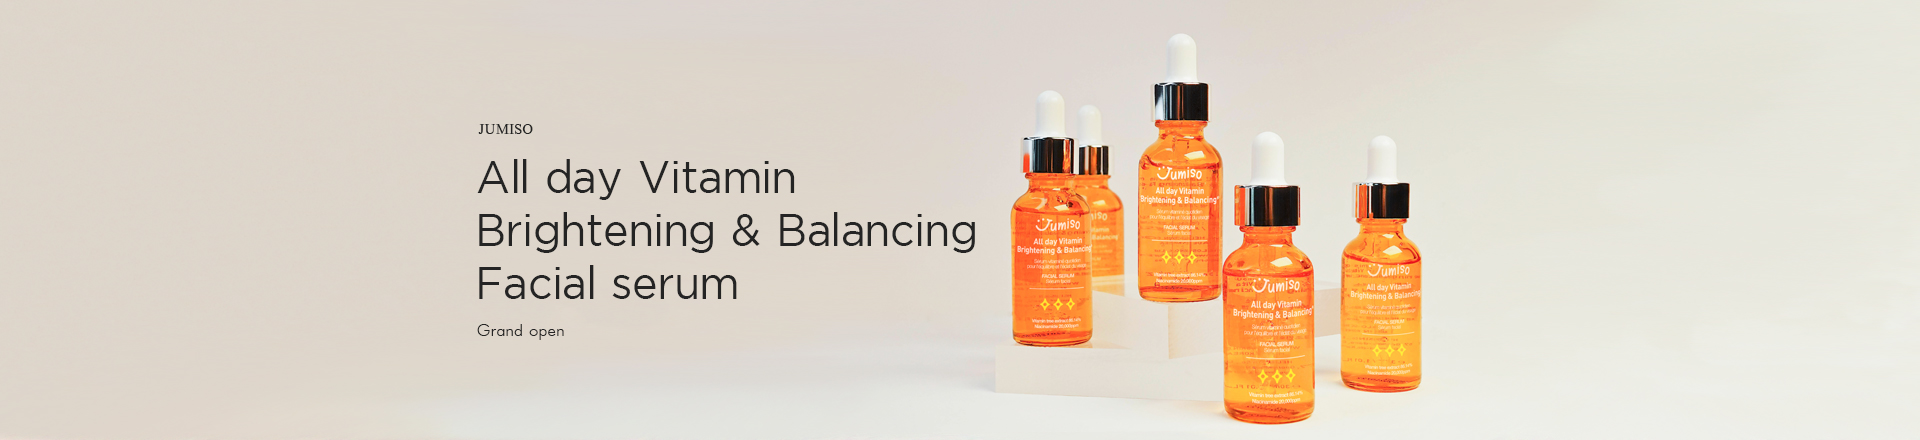 Jumiso New Vitamin Serum